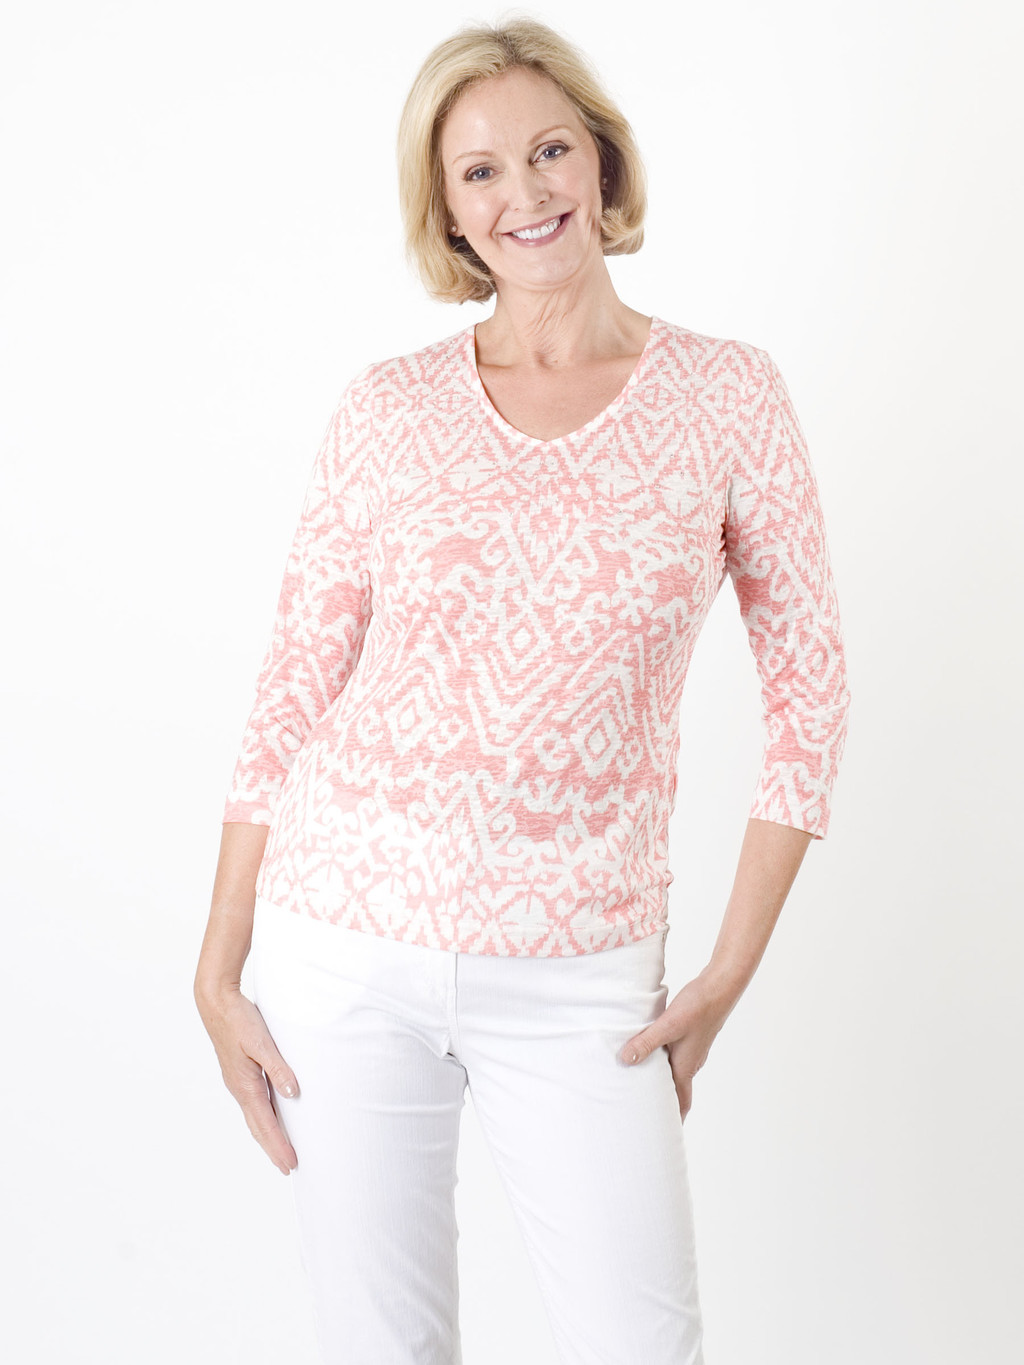 Gerry Weber Aztec Print Top - neckline: v-neck; predominant colour: pink; occasions: casual, creative work; length: standard; style: top; fibres: polyester/polyamide - mix; fit: body skimming; sleeve length: long sleeve; sleeve style: standard; texture group: knits/crochet; pattern type: fabric; pattern size: standard; pattern: patterned/print; season: a/w 2015; wardrobe: highlight